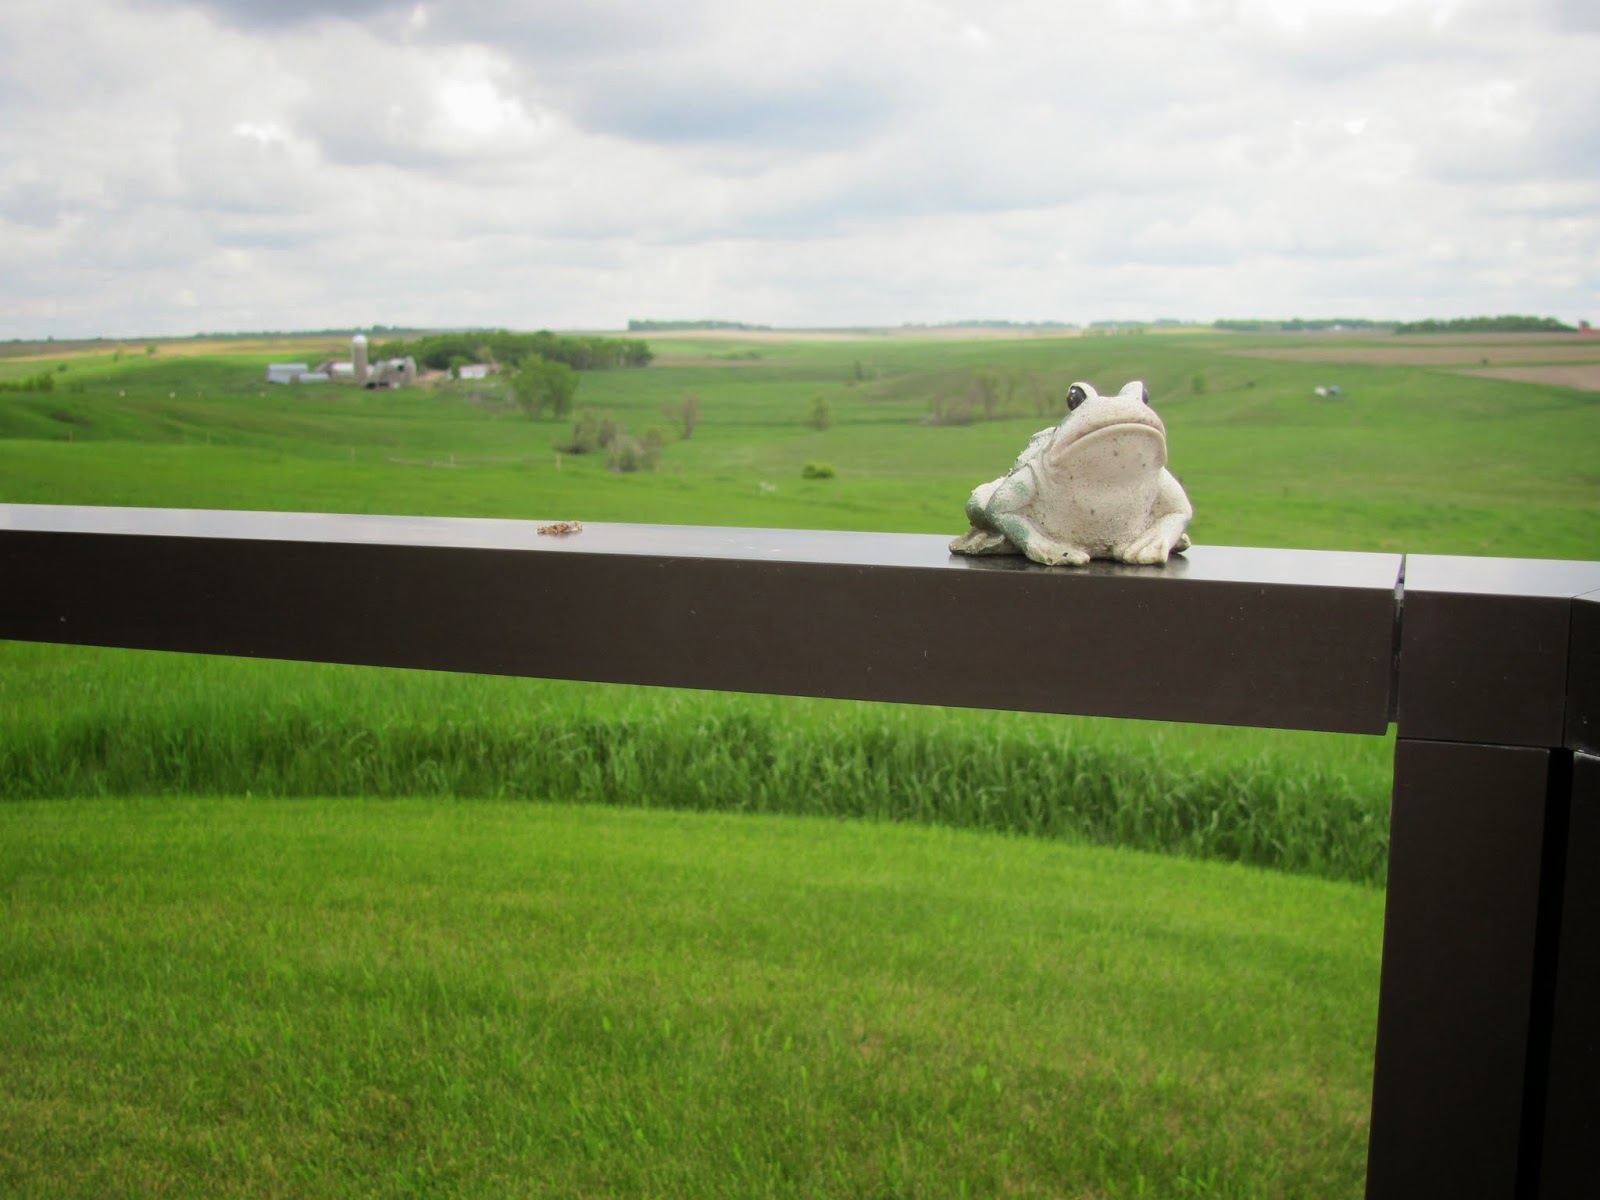 Frog poses on a fence post at a rest stop in North Dakota